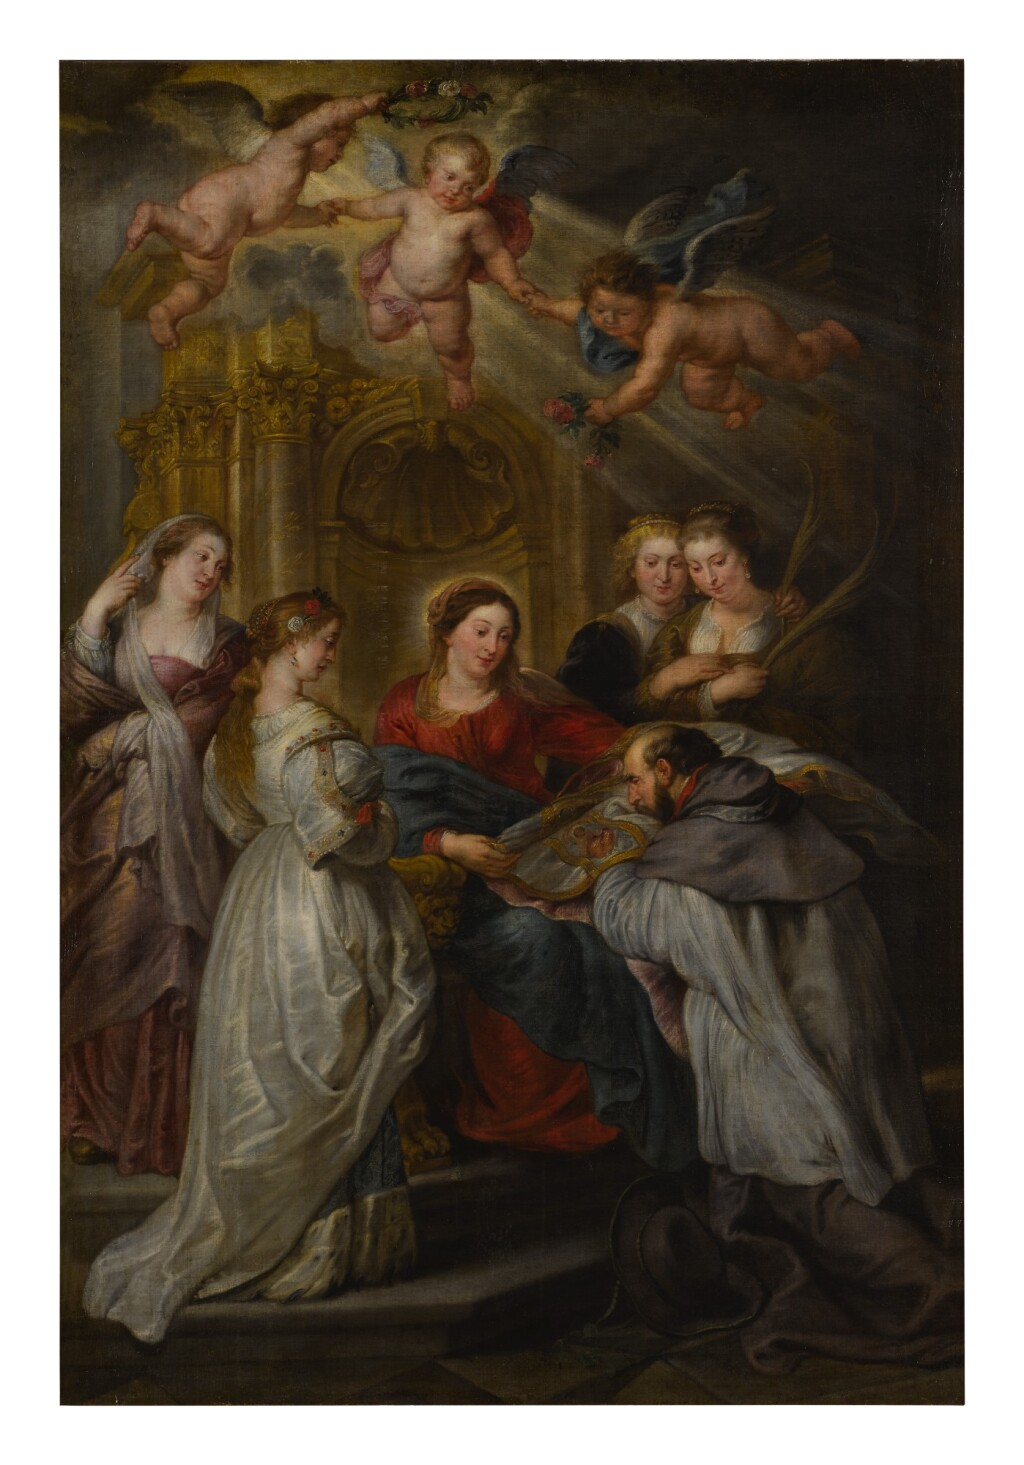 FOLLOWER OF SIR PETER PAUL RUBENS   SAINT ILDEFONSO RECEIVING THE CHASUBLE FROM THE VIRGIN